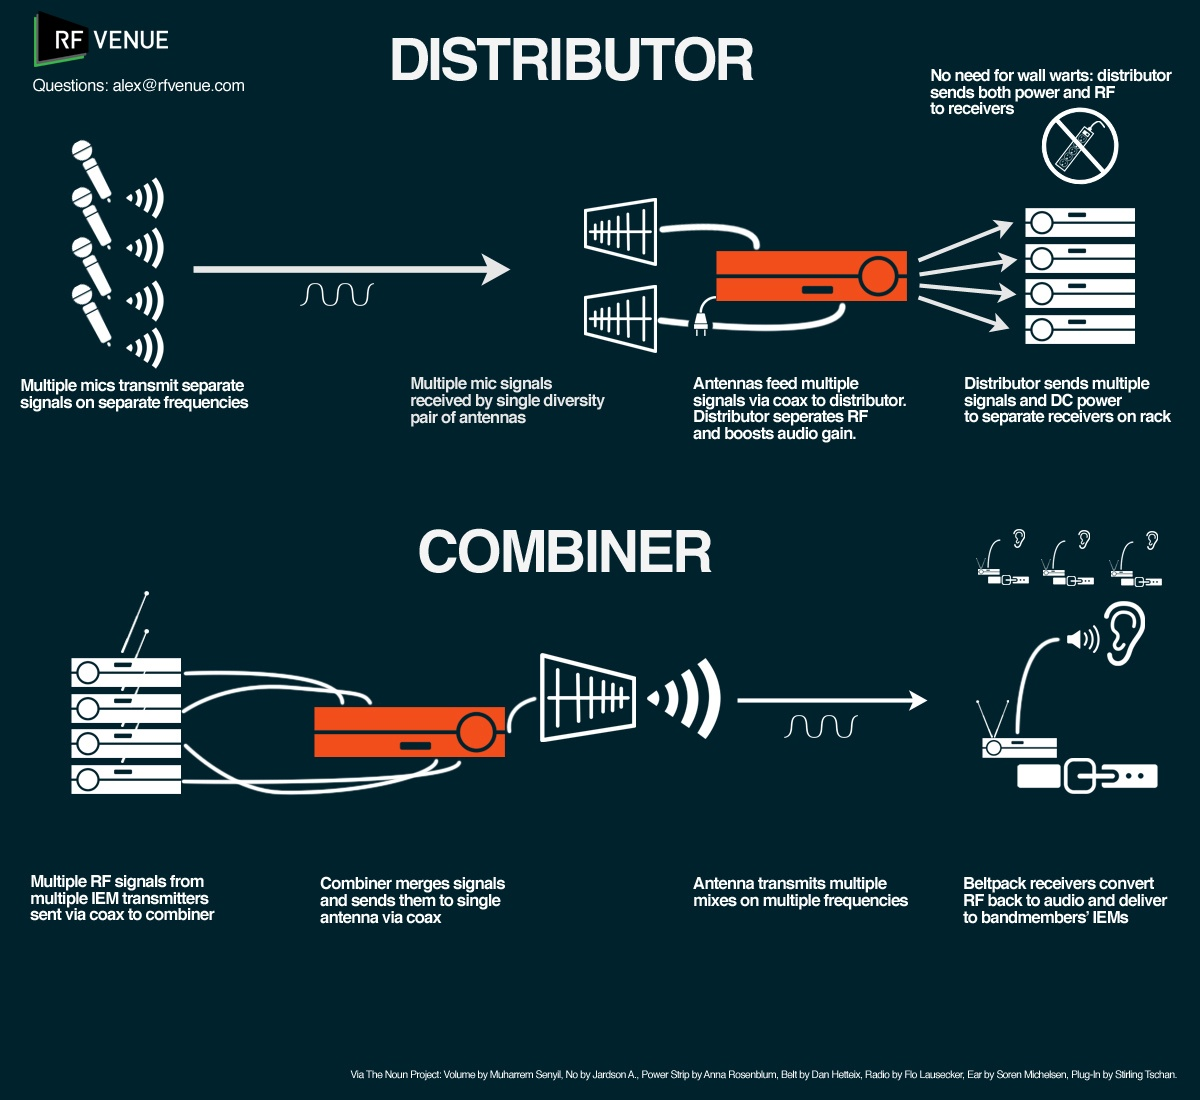 distribution_infographic-1